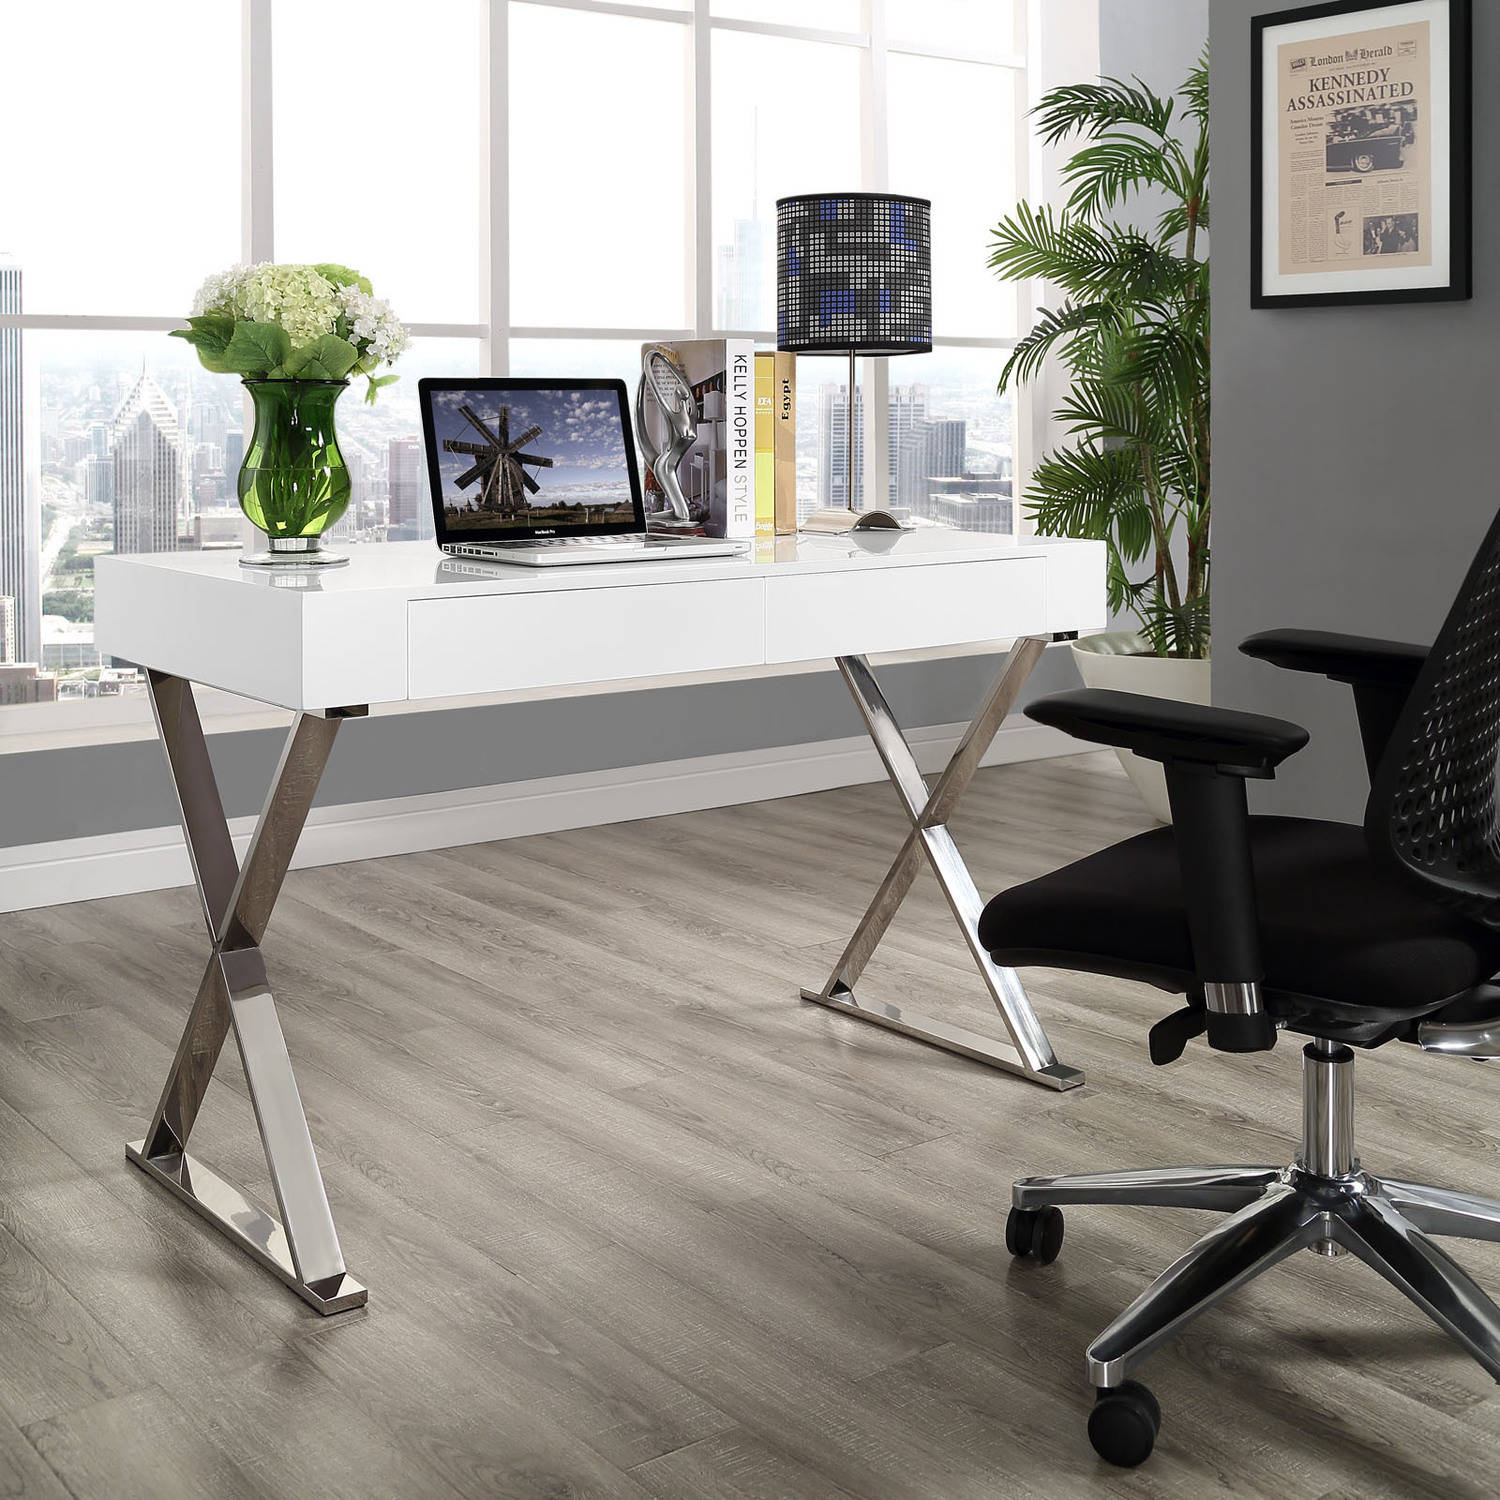 Stainless steel office desk Glass Top Modway Sector Office Desk With Stainless Steel Frame Multiple Colors Walmartcom Walmart Modway Sector Office Desk With Stainless Steel Frame Multiple